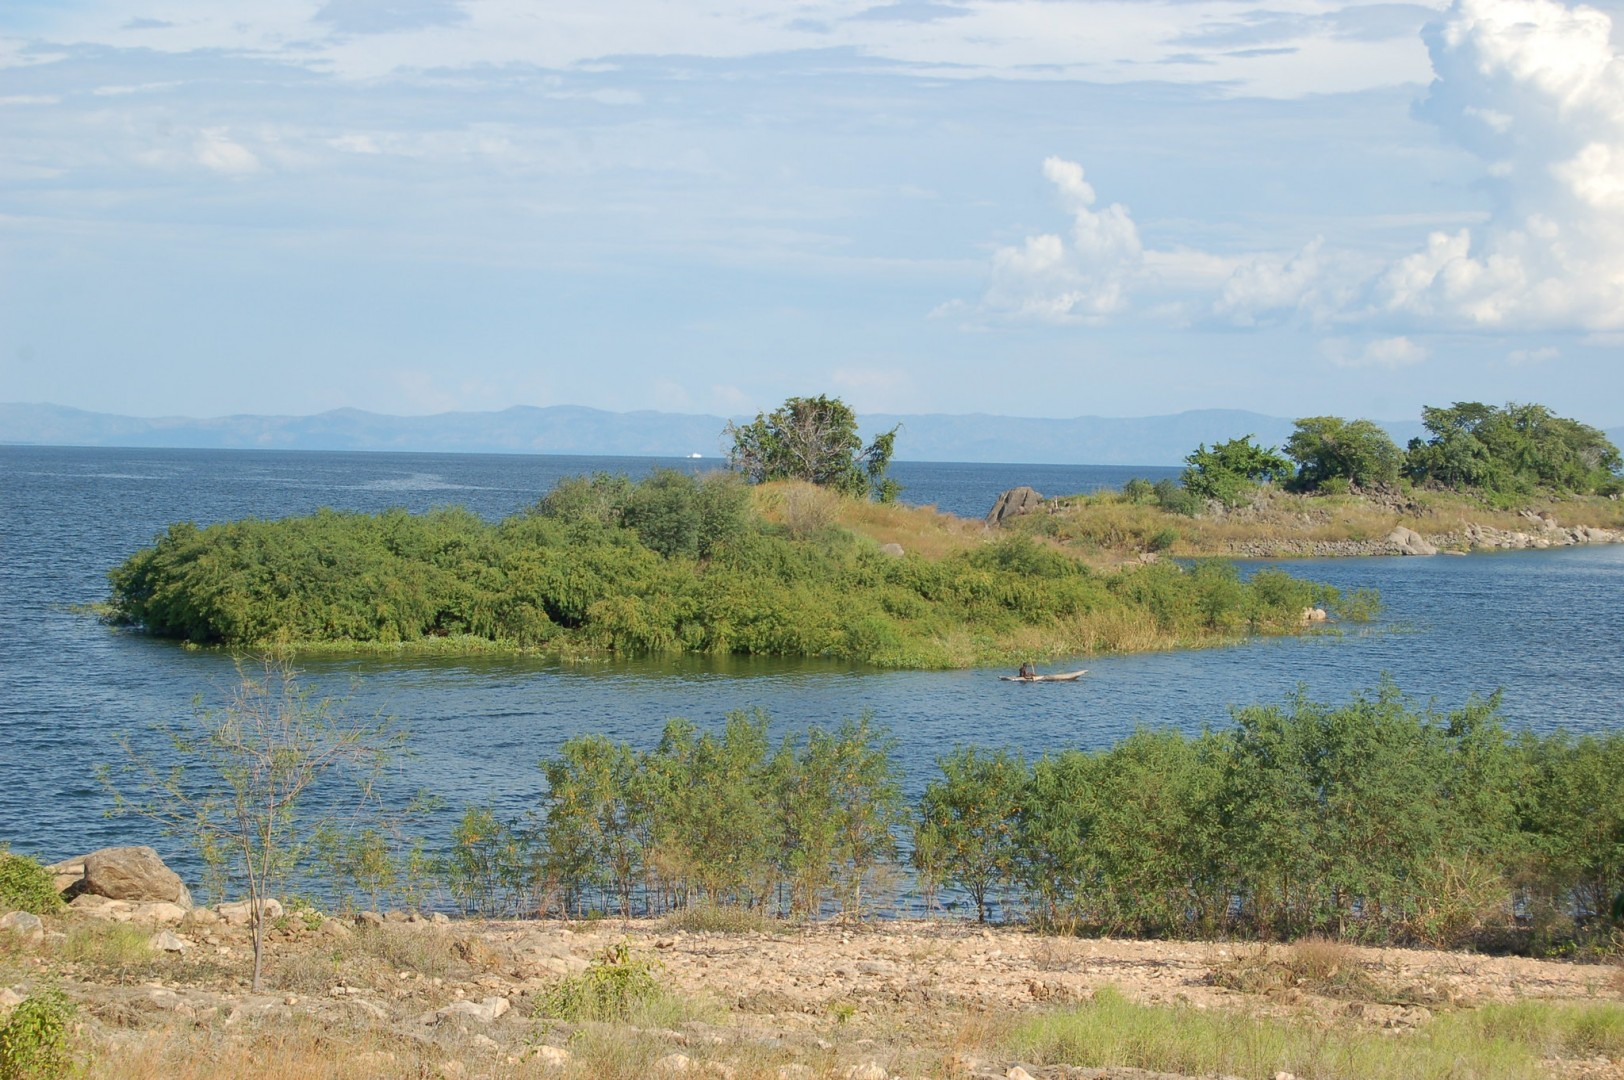 Lake Kariba, the world's largest man-made lake, could act as a giant storage battery to the 2GW of solar under consideration, the government said. Image credit: Joachim Huber / Flickr